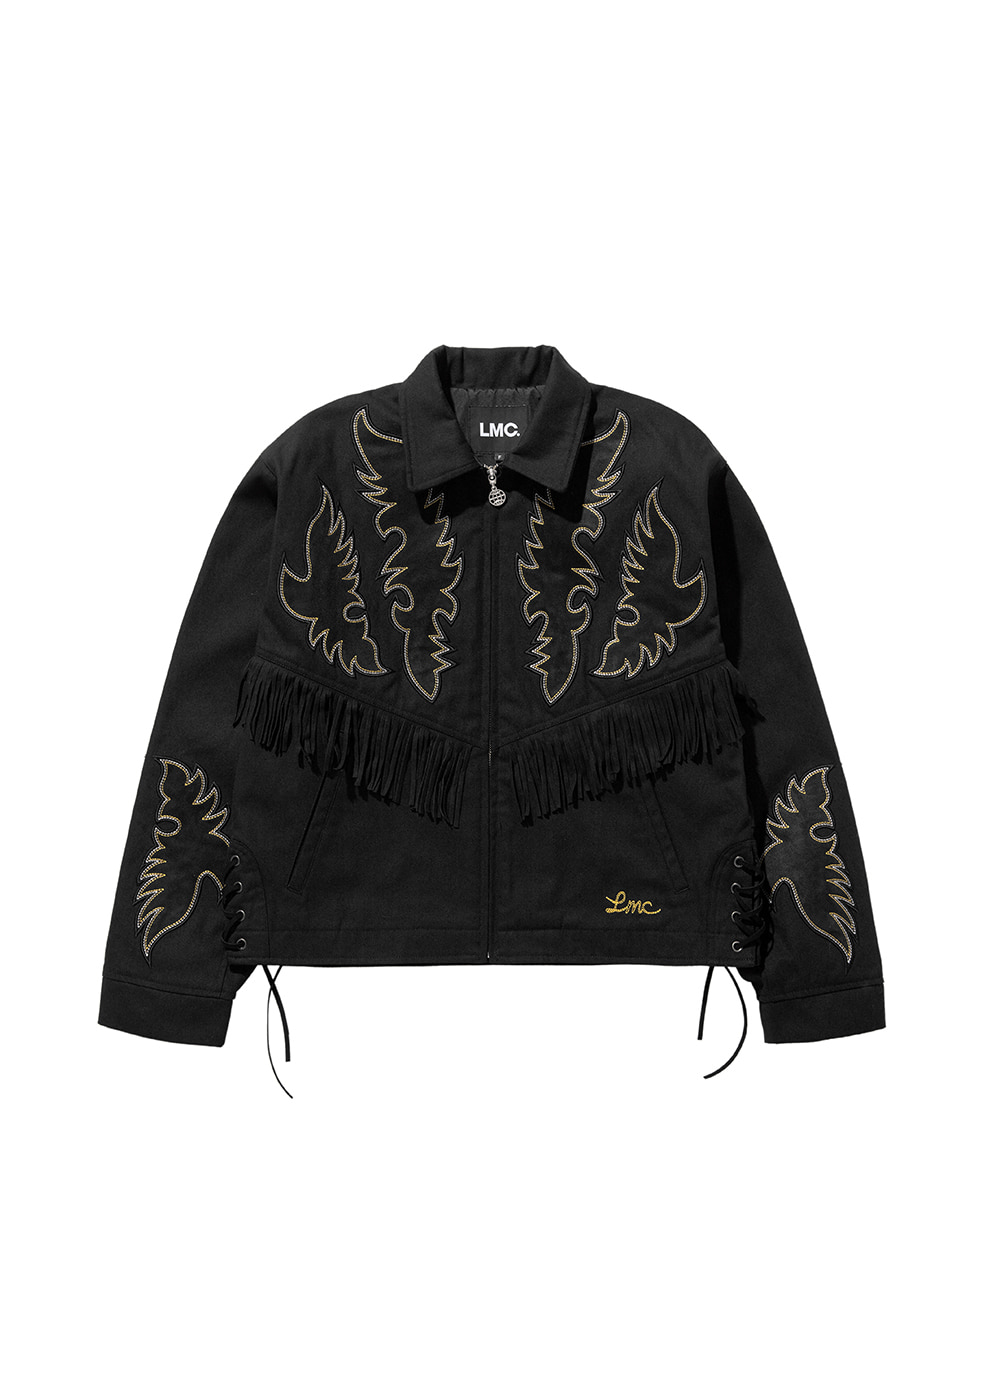 LMC WESTERN WORK JACKET black